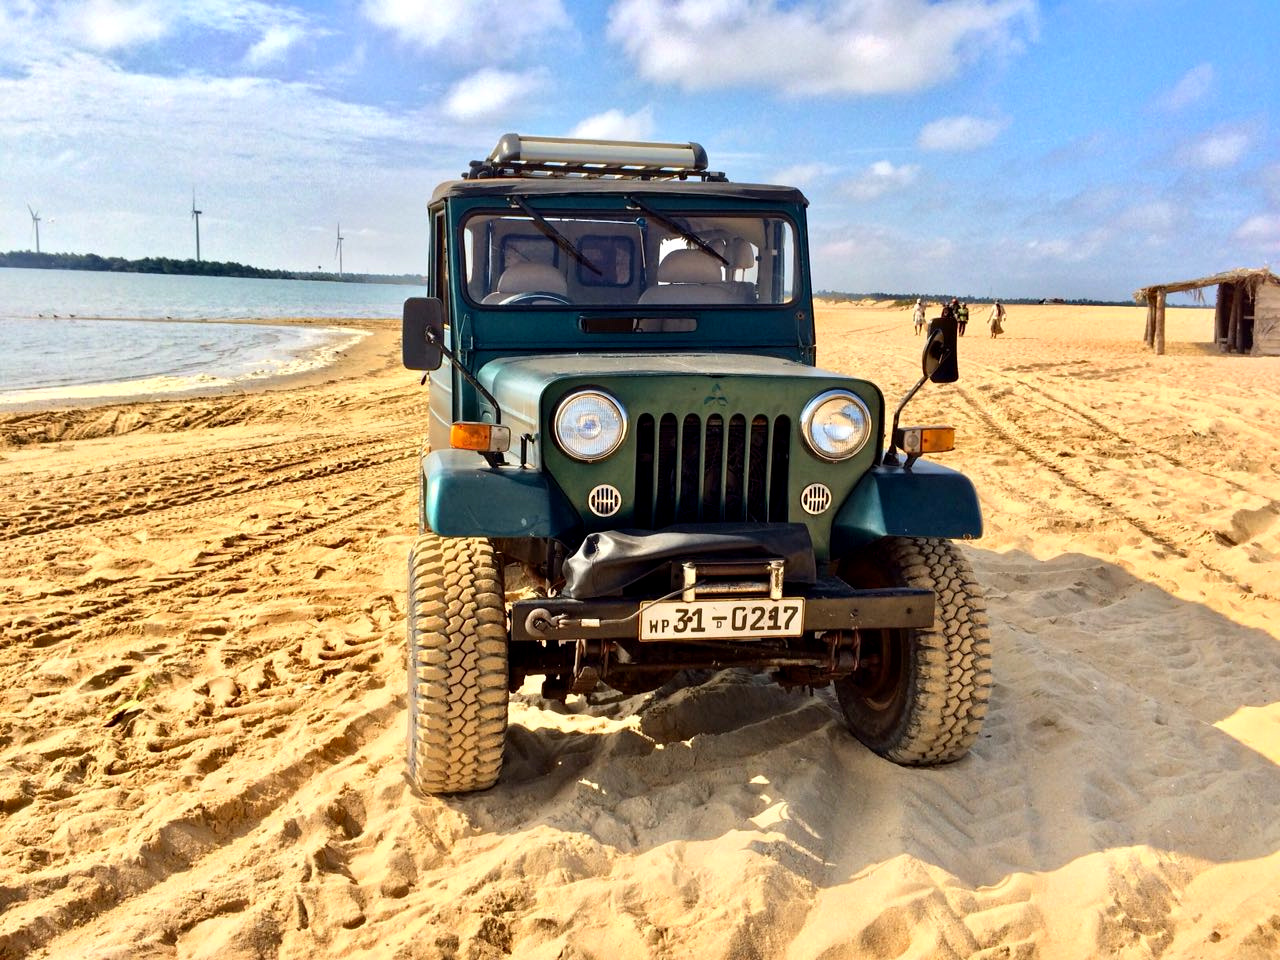 Discover Kalpitya by Jeep